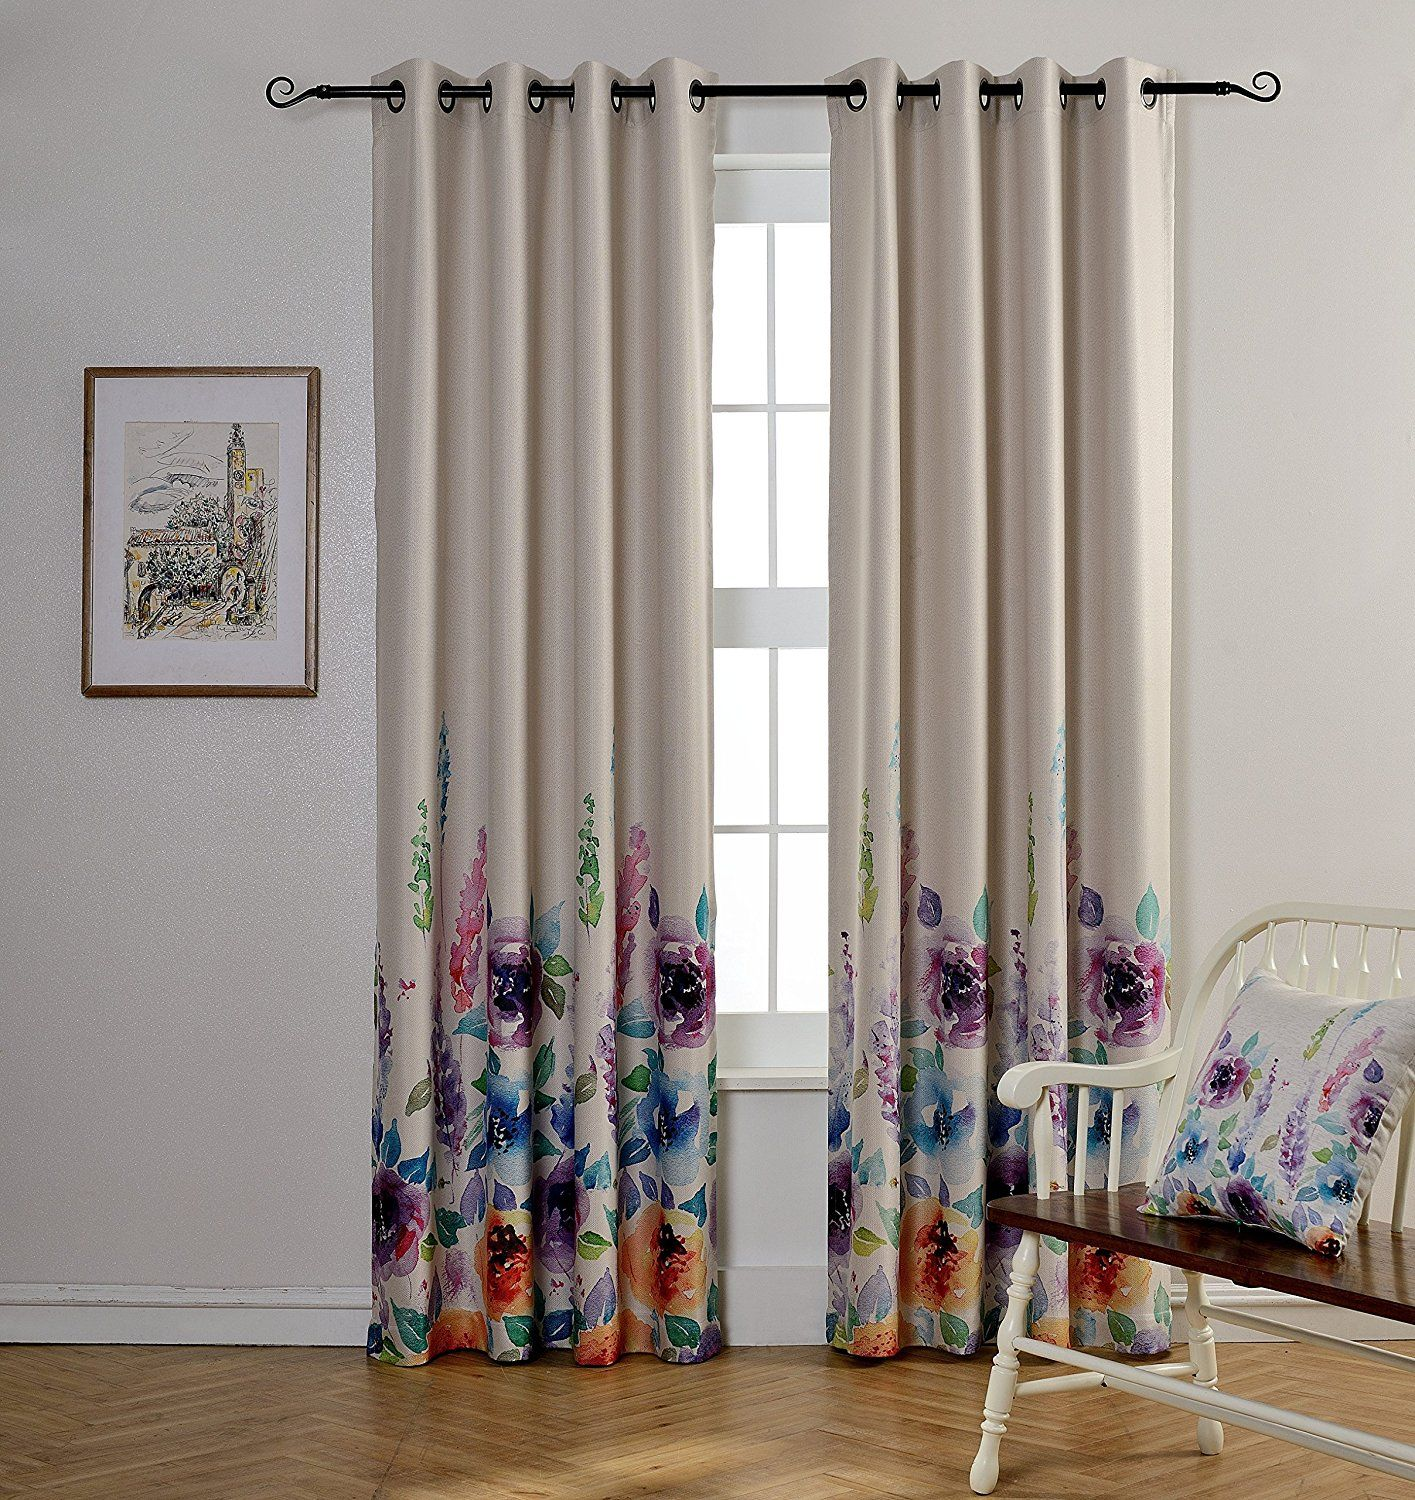 white fashion home back amazon blackout rod design for color of walls tab best pocket navy inspirational awesome curtains insulated thermal curtain w